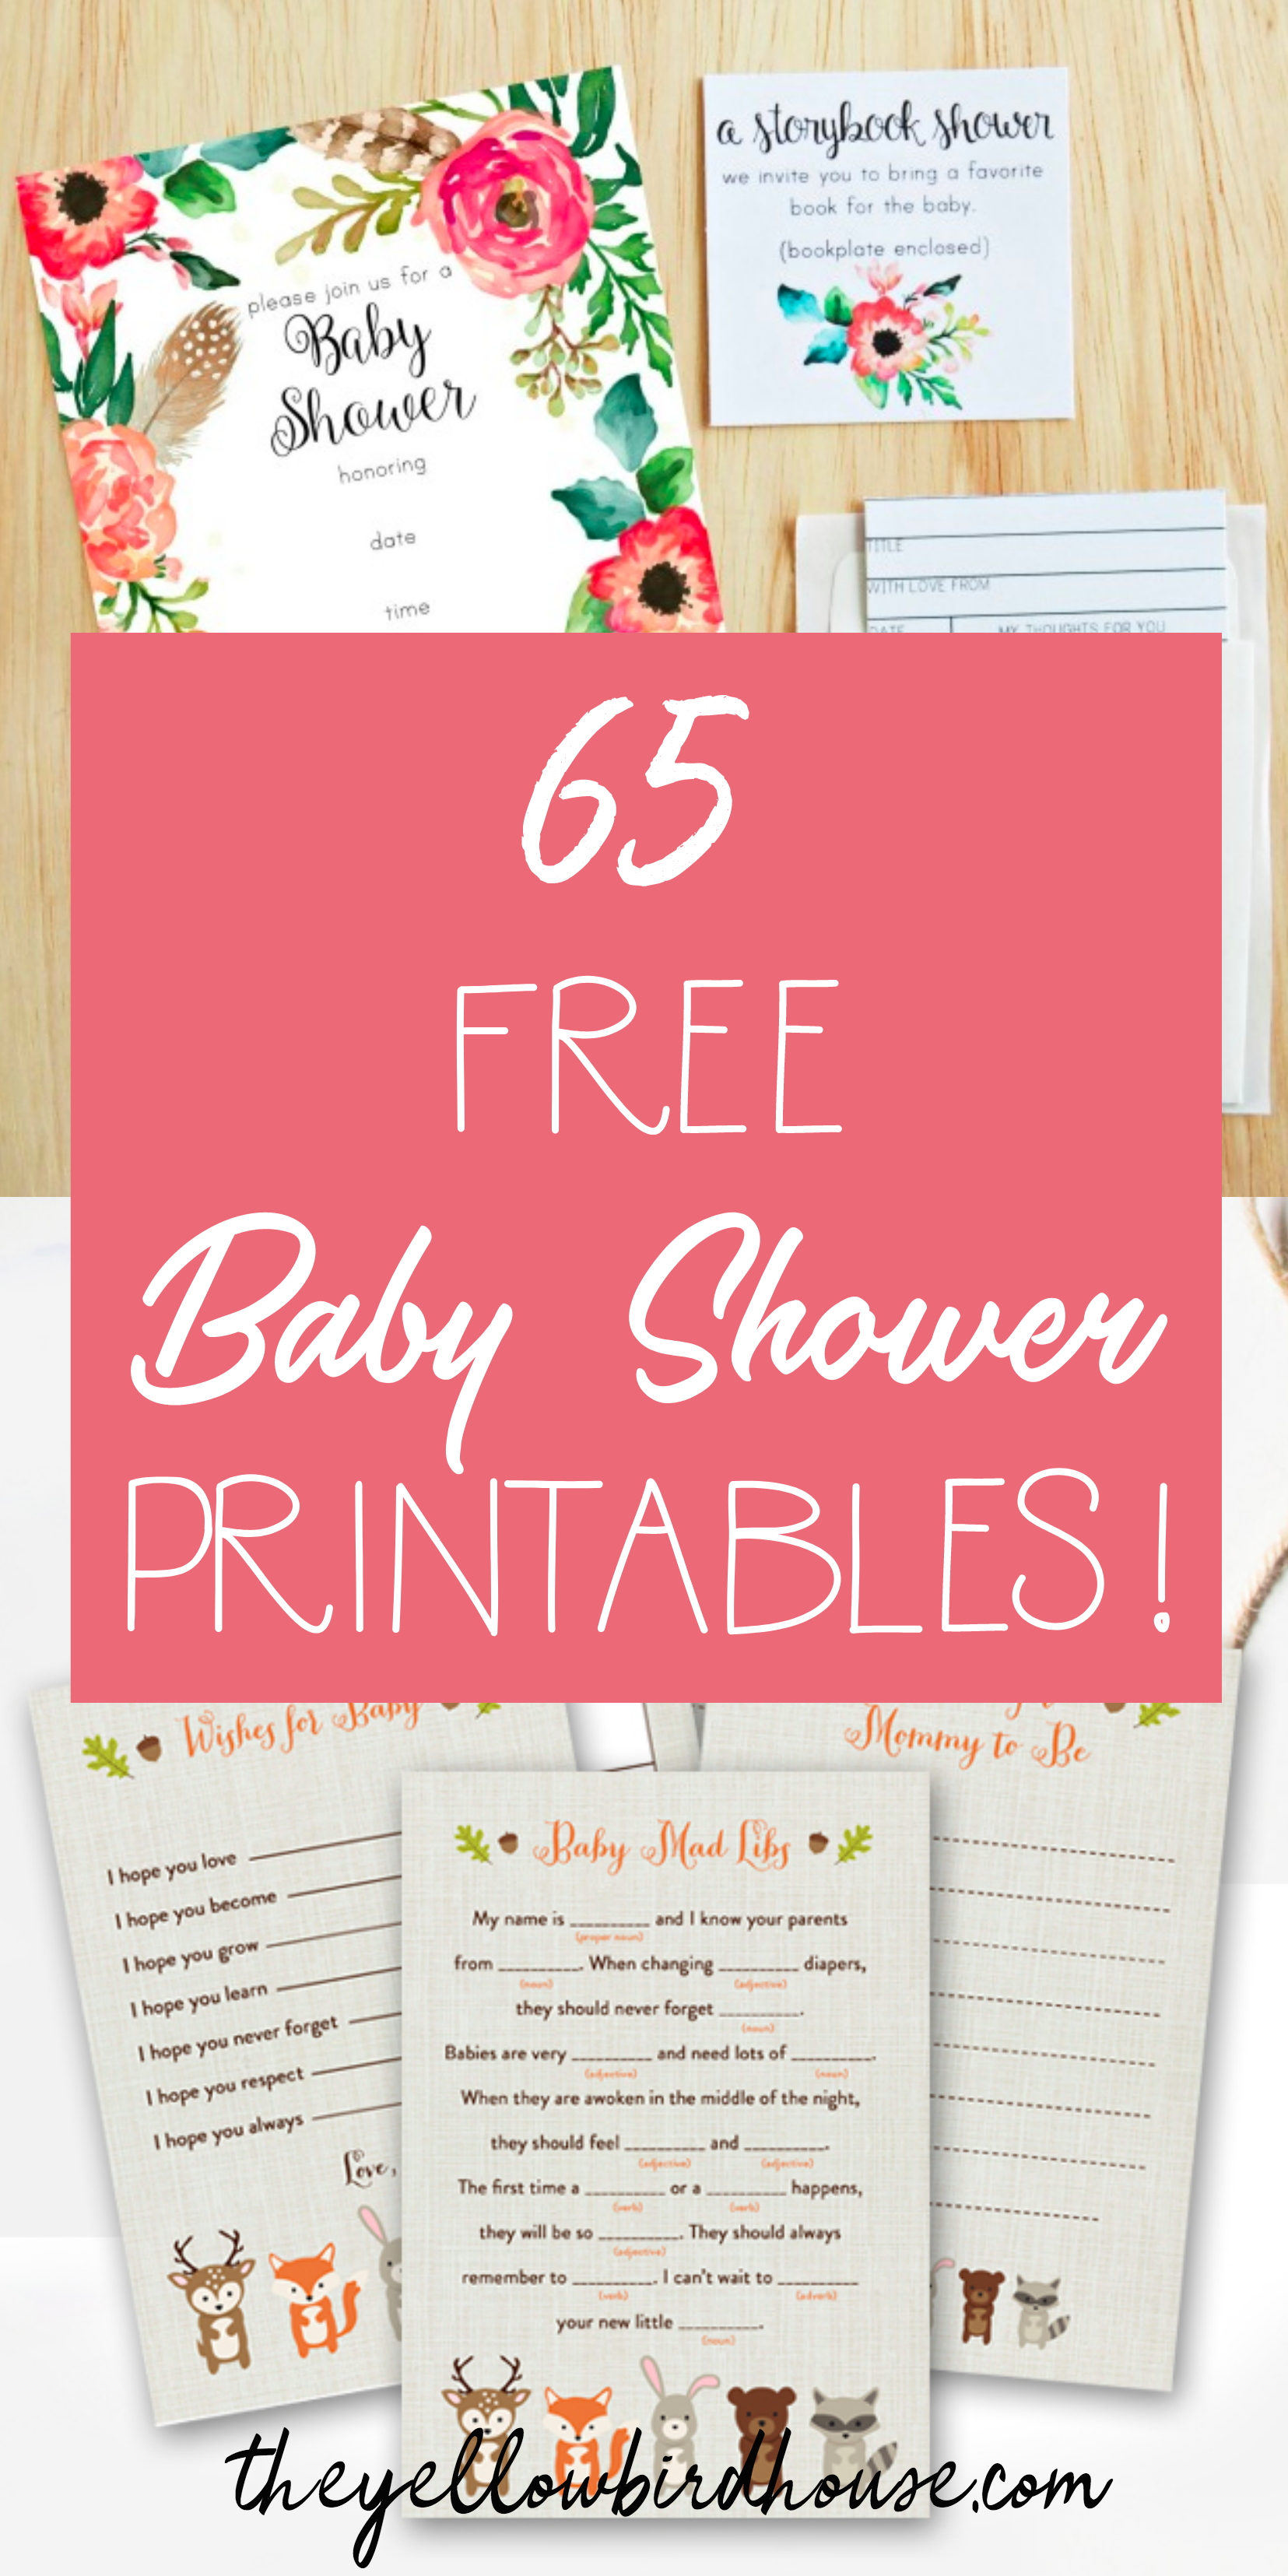 65 Free Baby Shower Printables For An Adorable Party - Free Printable Book Themed Baby Shower Invitations